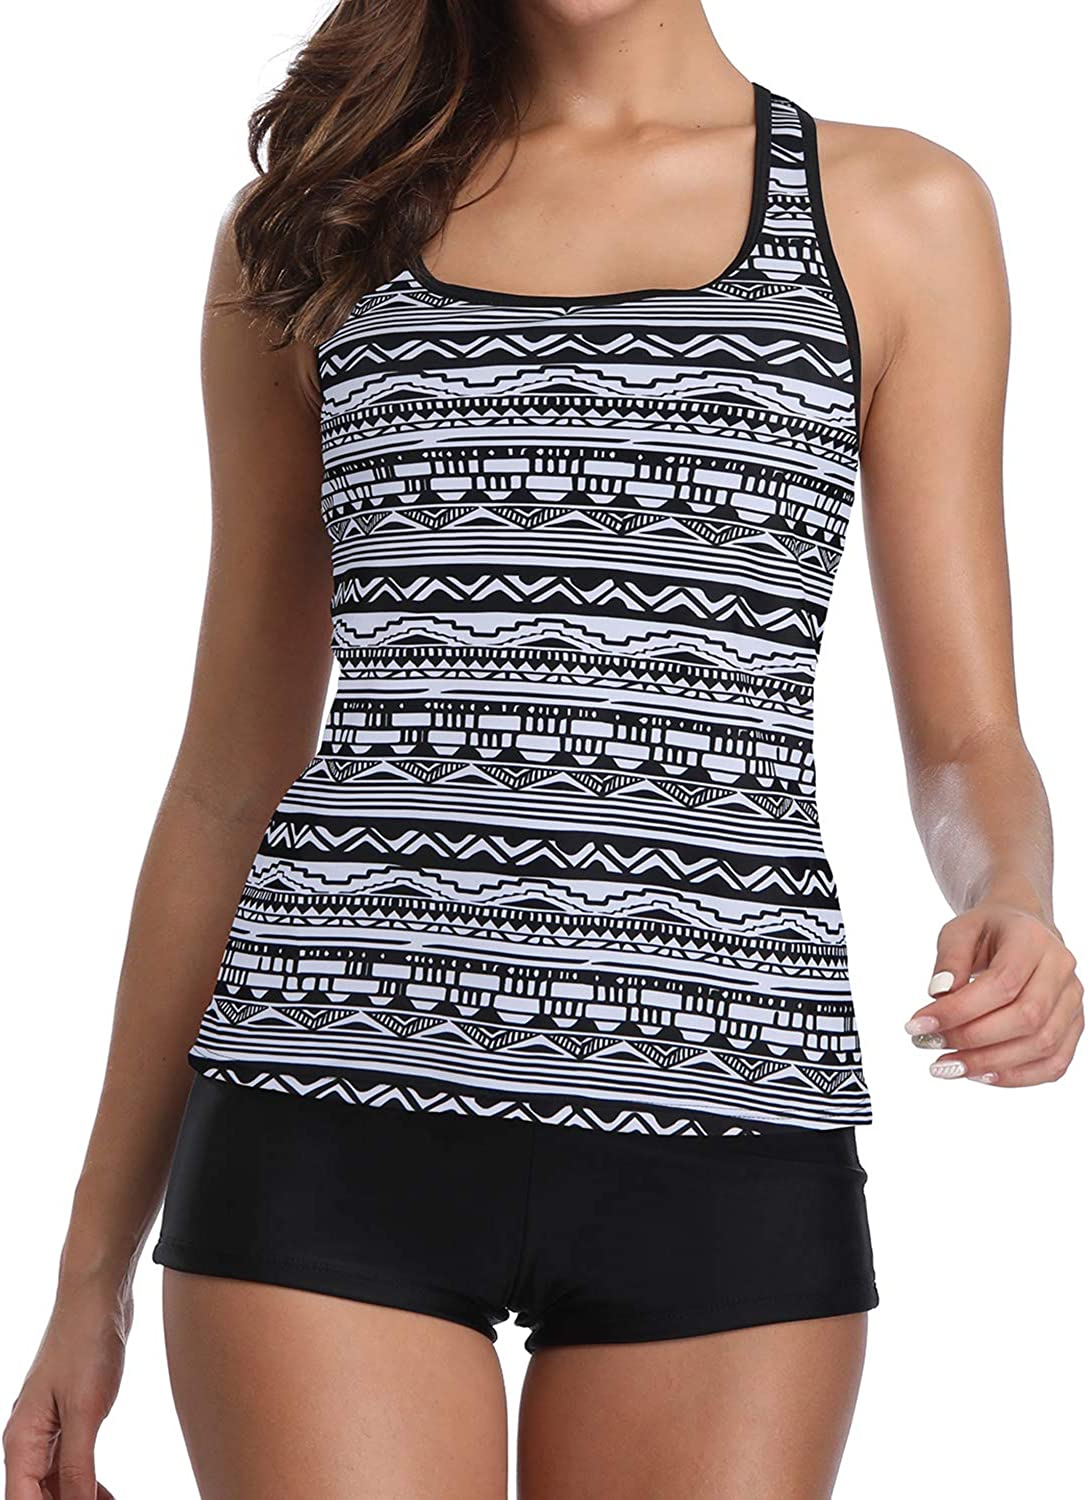 Yonique 3 Piece Athletic Tankini Swimsuit for Women Sport Swimwear with Boyshort Tank Top with Bra and Shorts